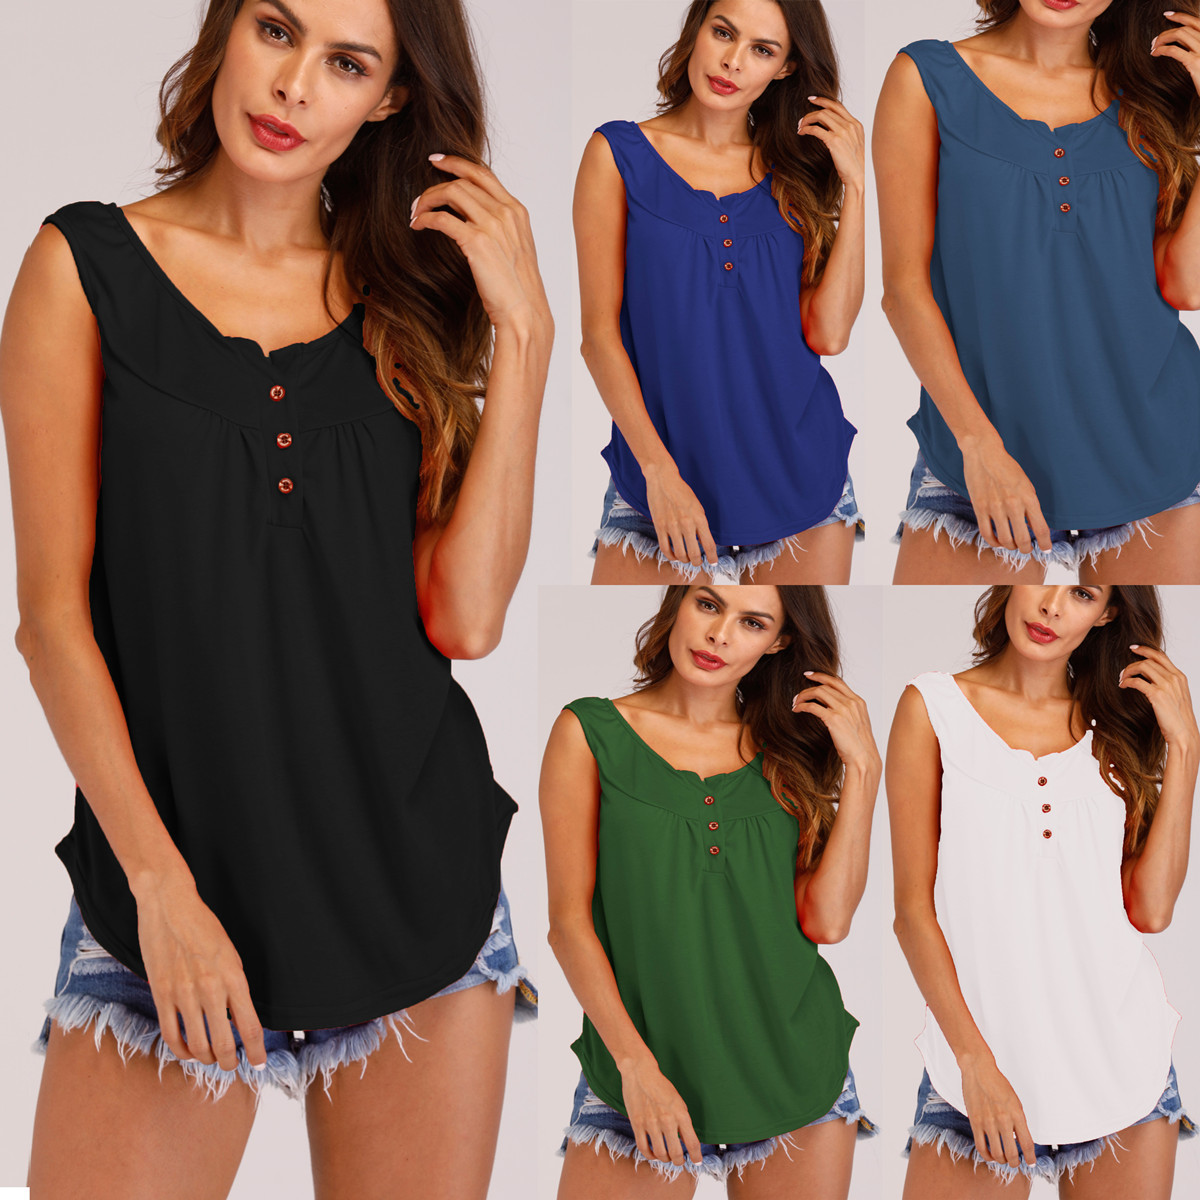 2019 New trendy sleeveless buttonless pure-color summer season European and American informal sleeveless ladies shirts clothes T-Shirts, Low cost T-Shirts, 2019 New trendy sleeveless buttonless pure shade summer season...